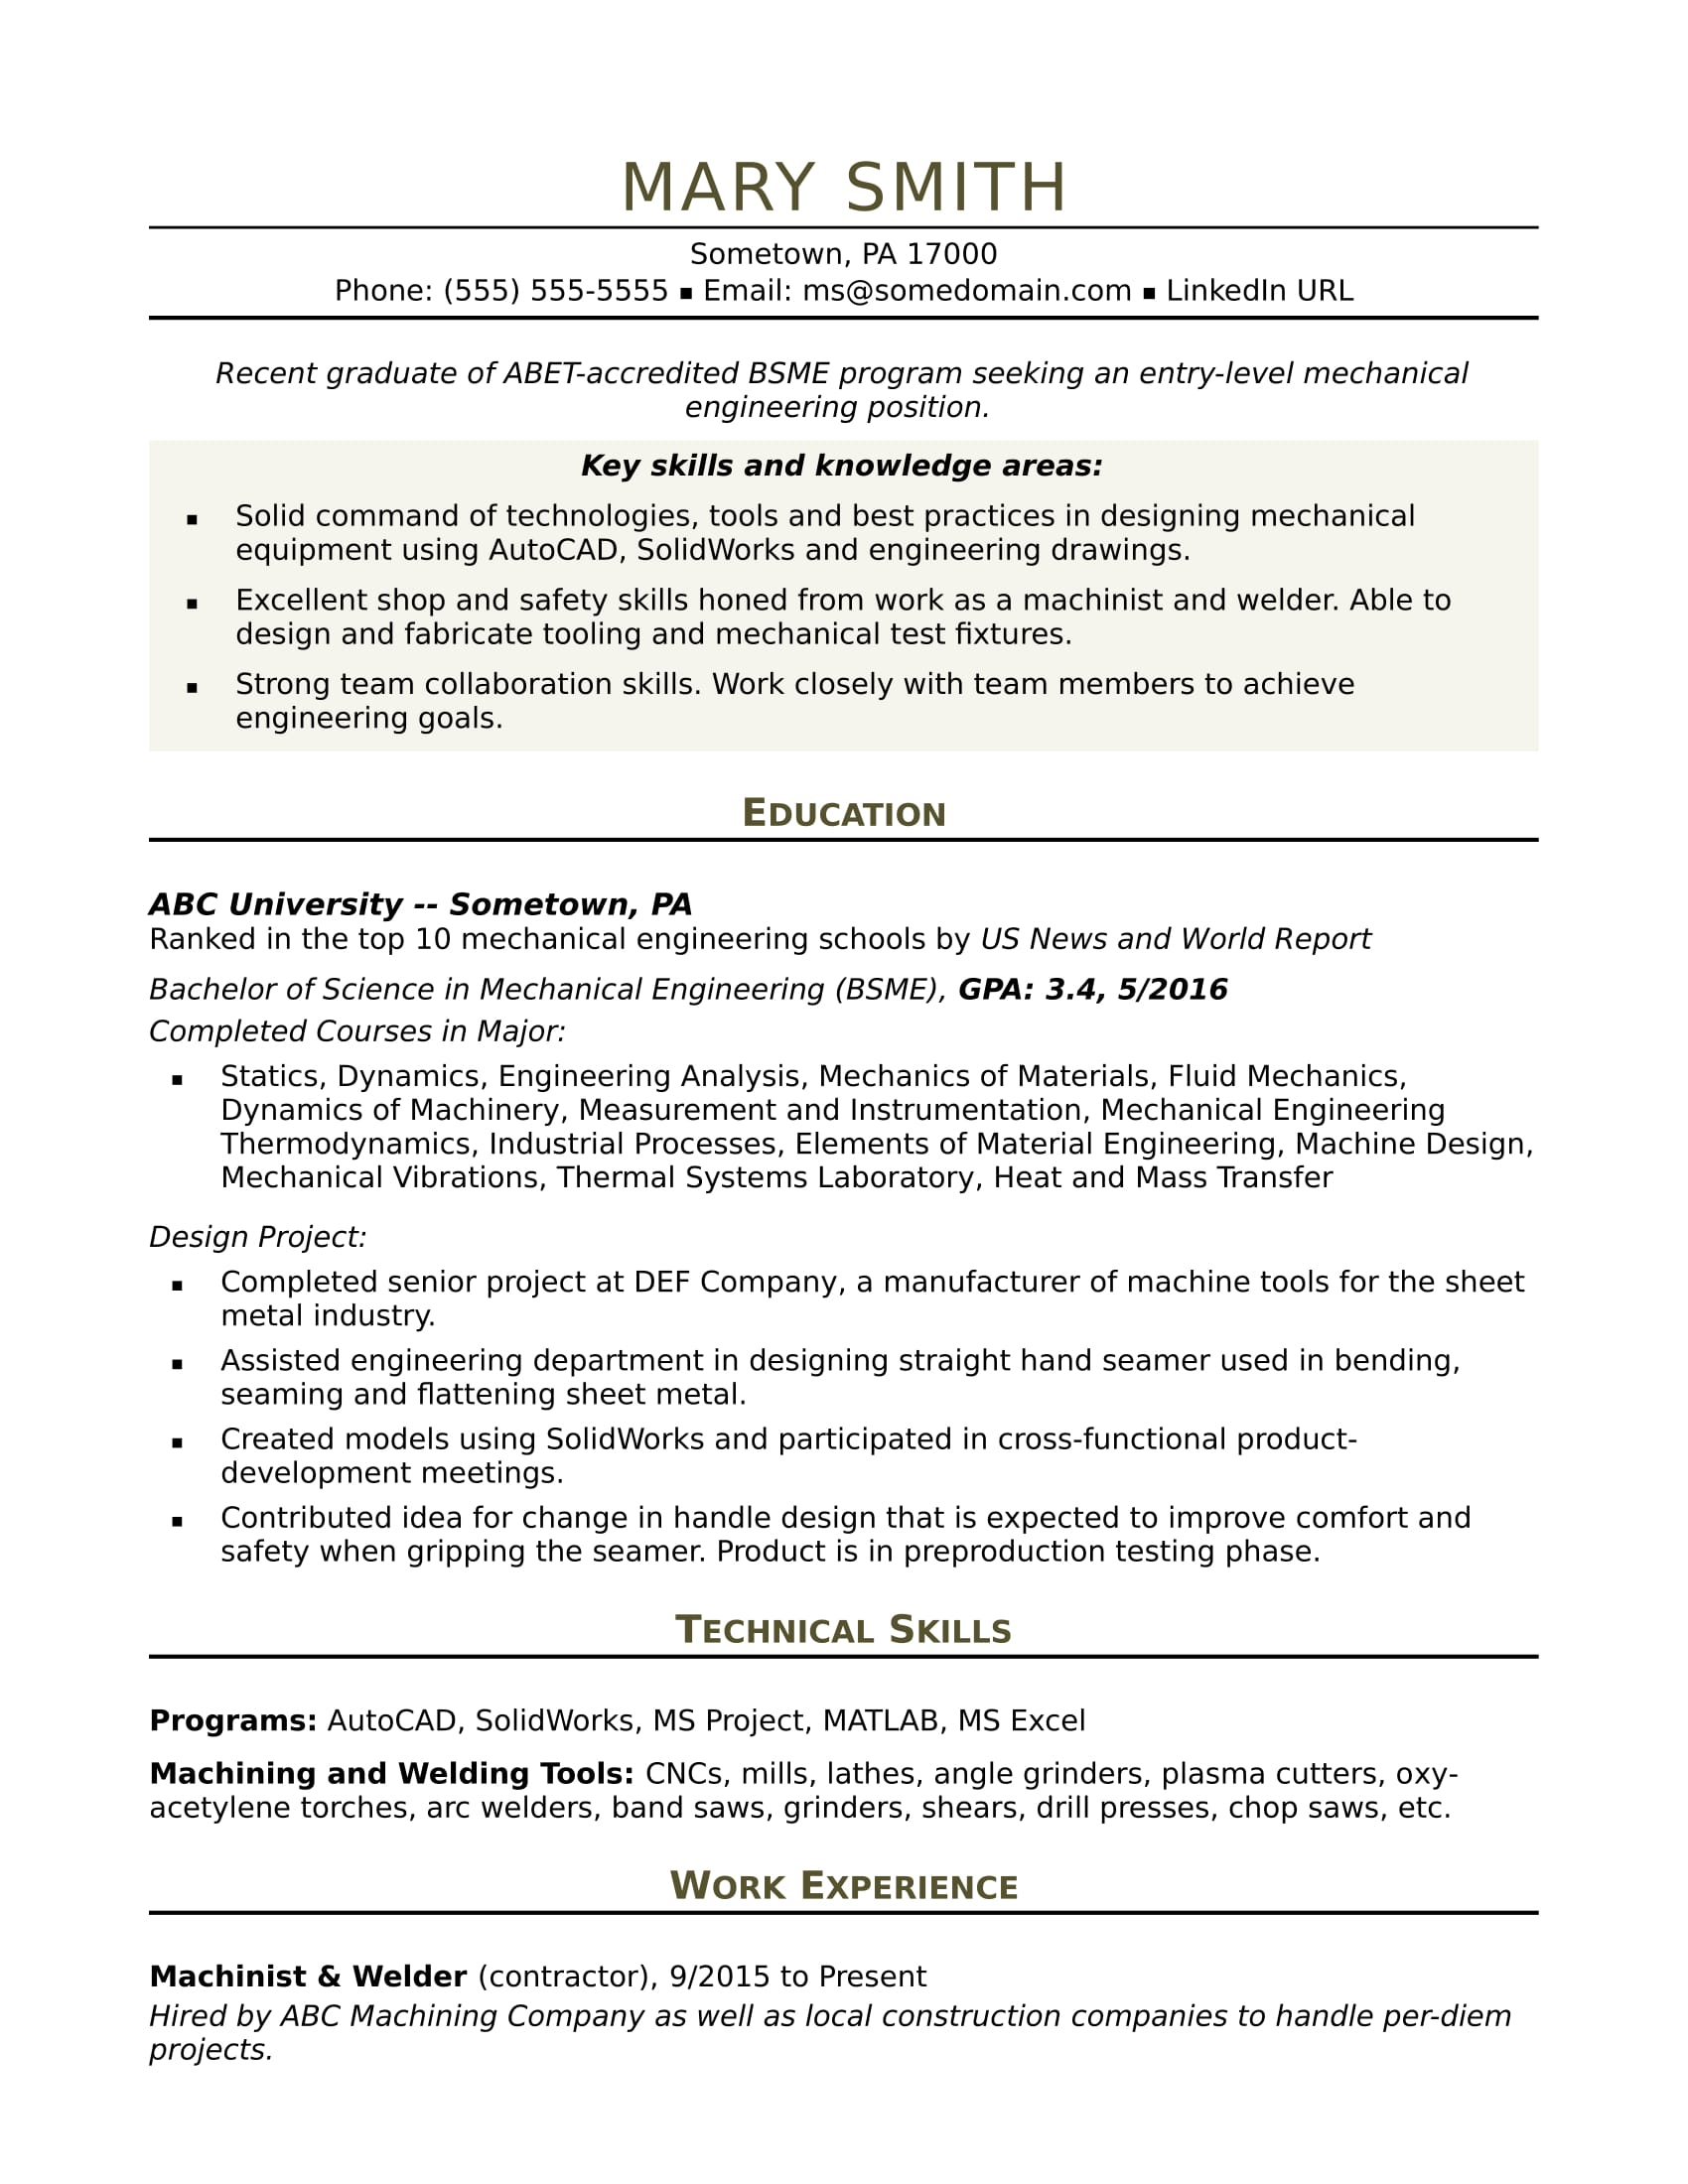 sample resume for an entry level mechanical engineer monster engineering objective Resume Mechanical Engineering Resume Objective